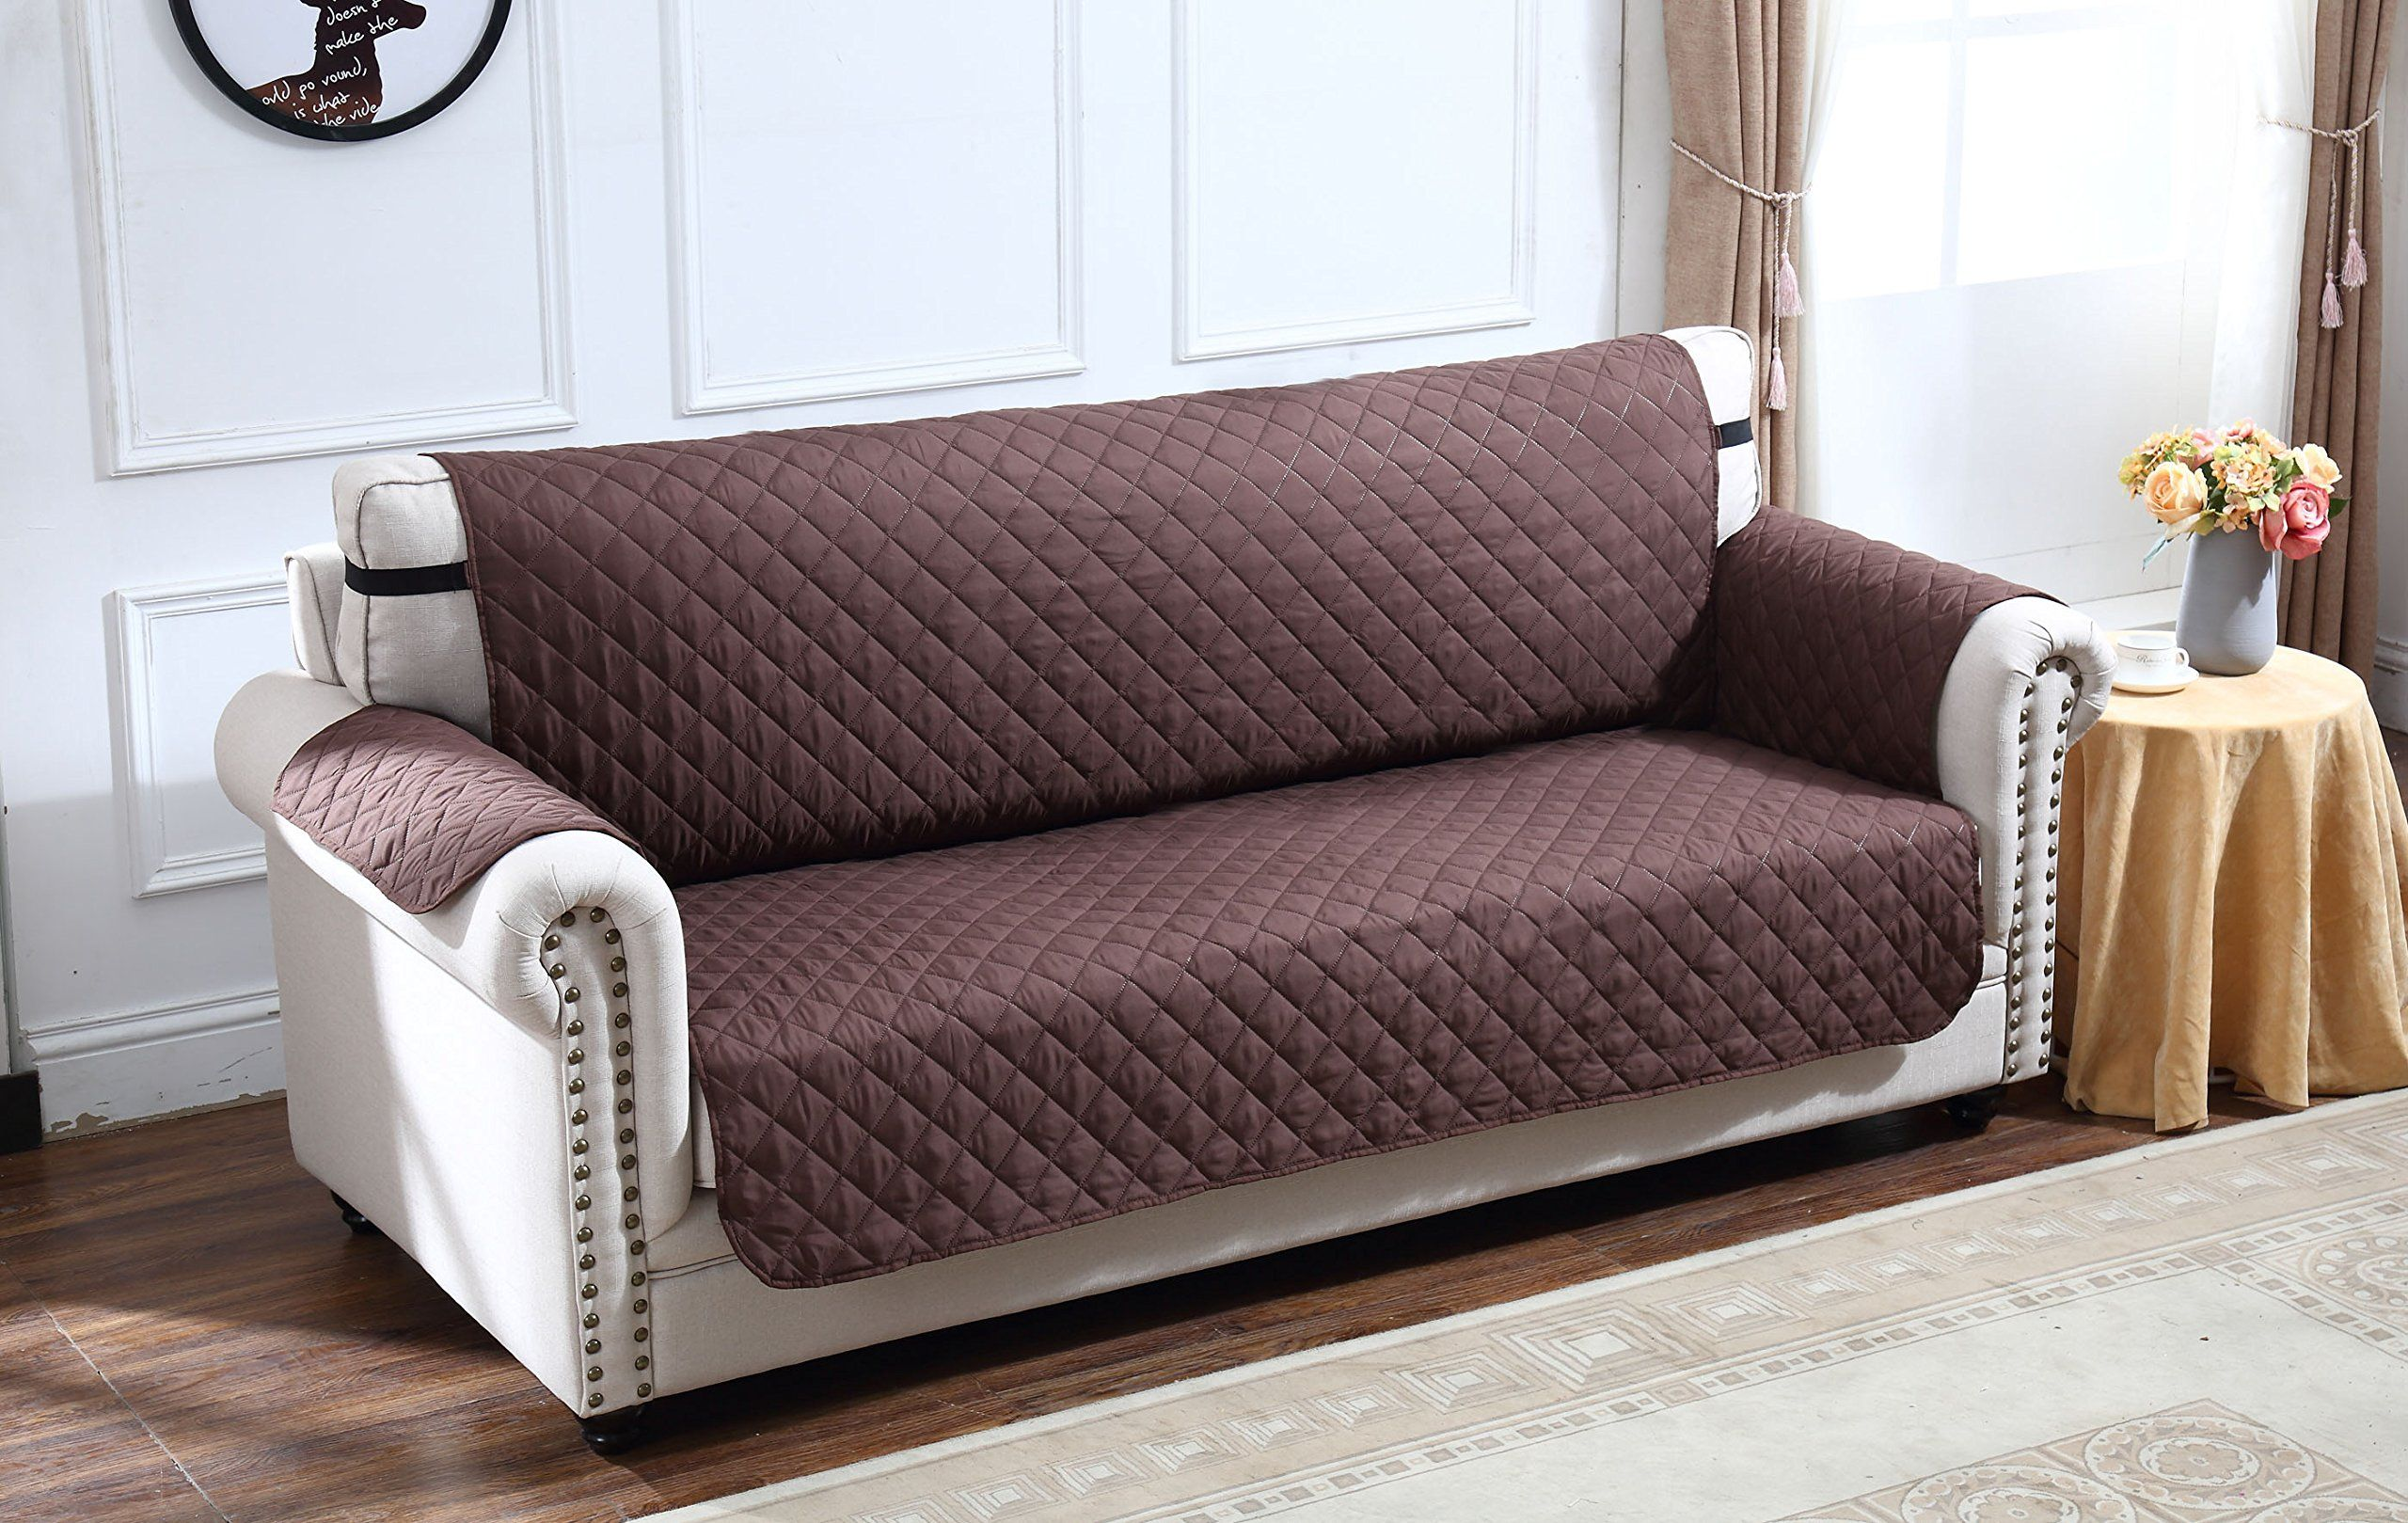 Argstar Sofa Covers Extra Large Profession Pet Protector